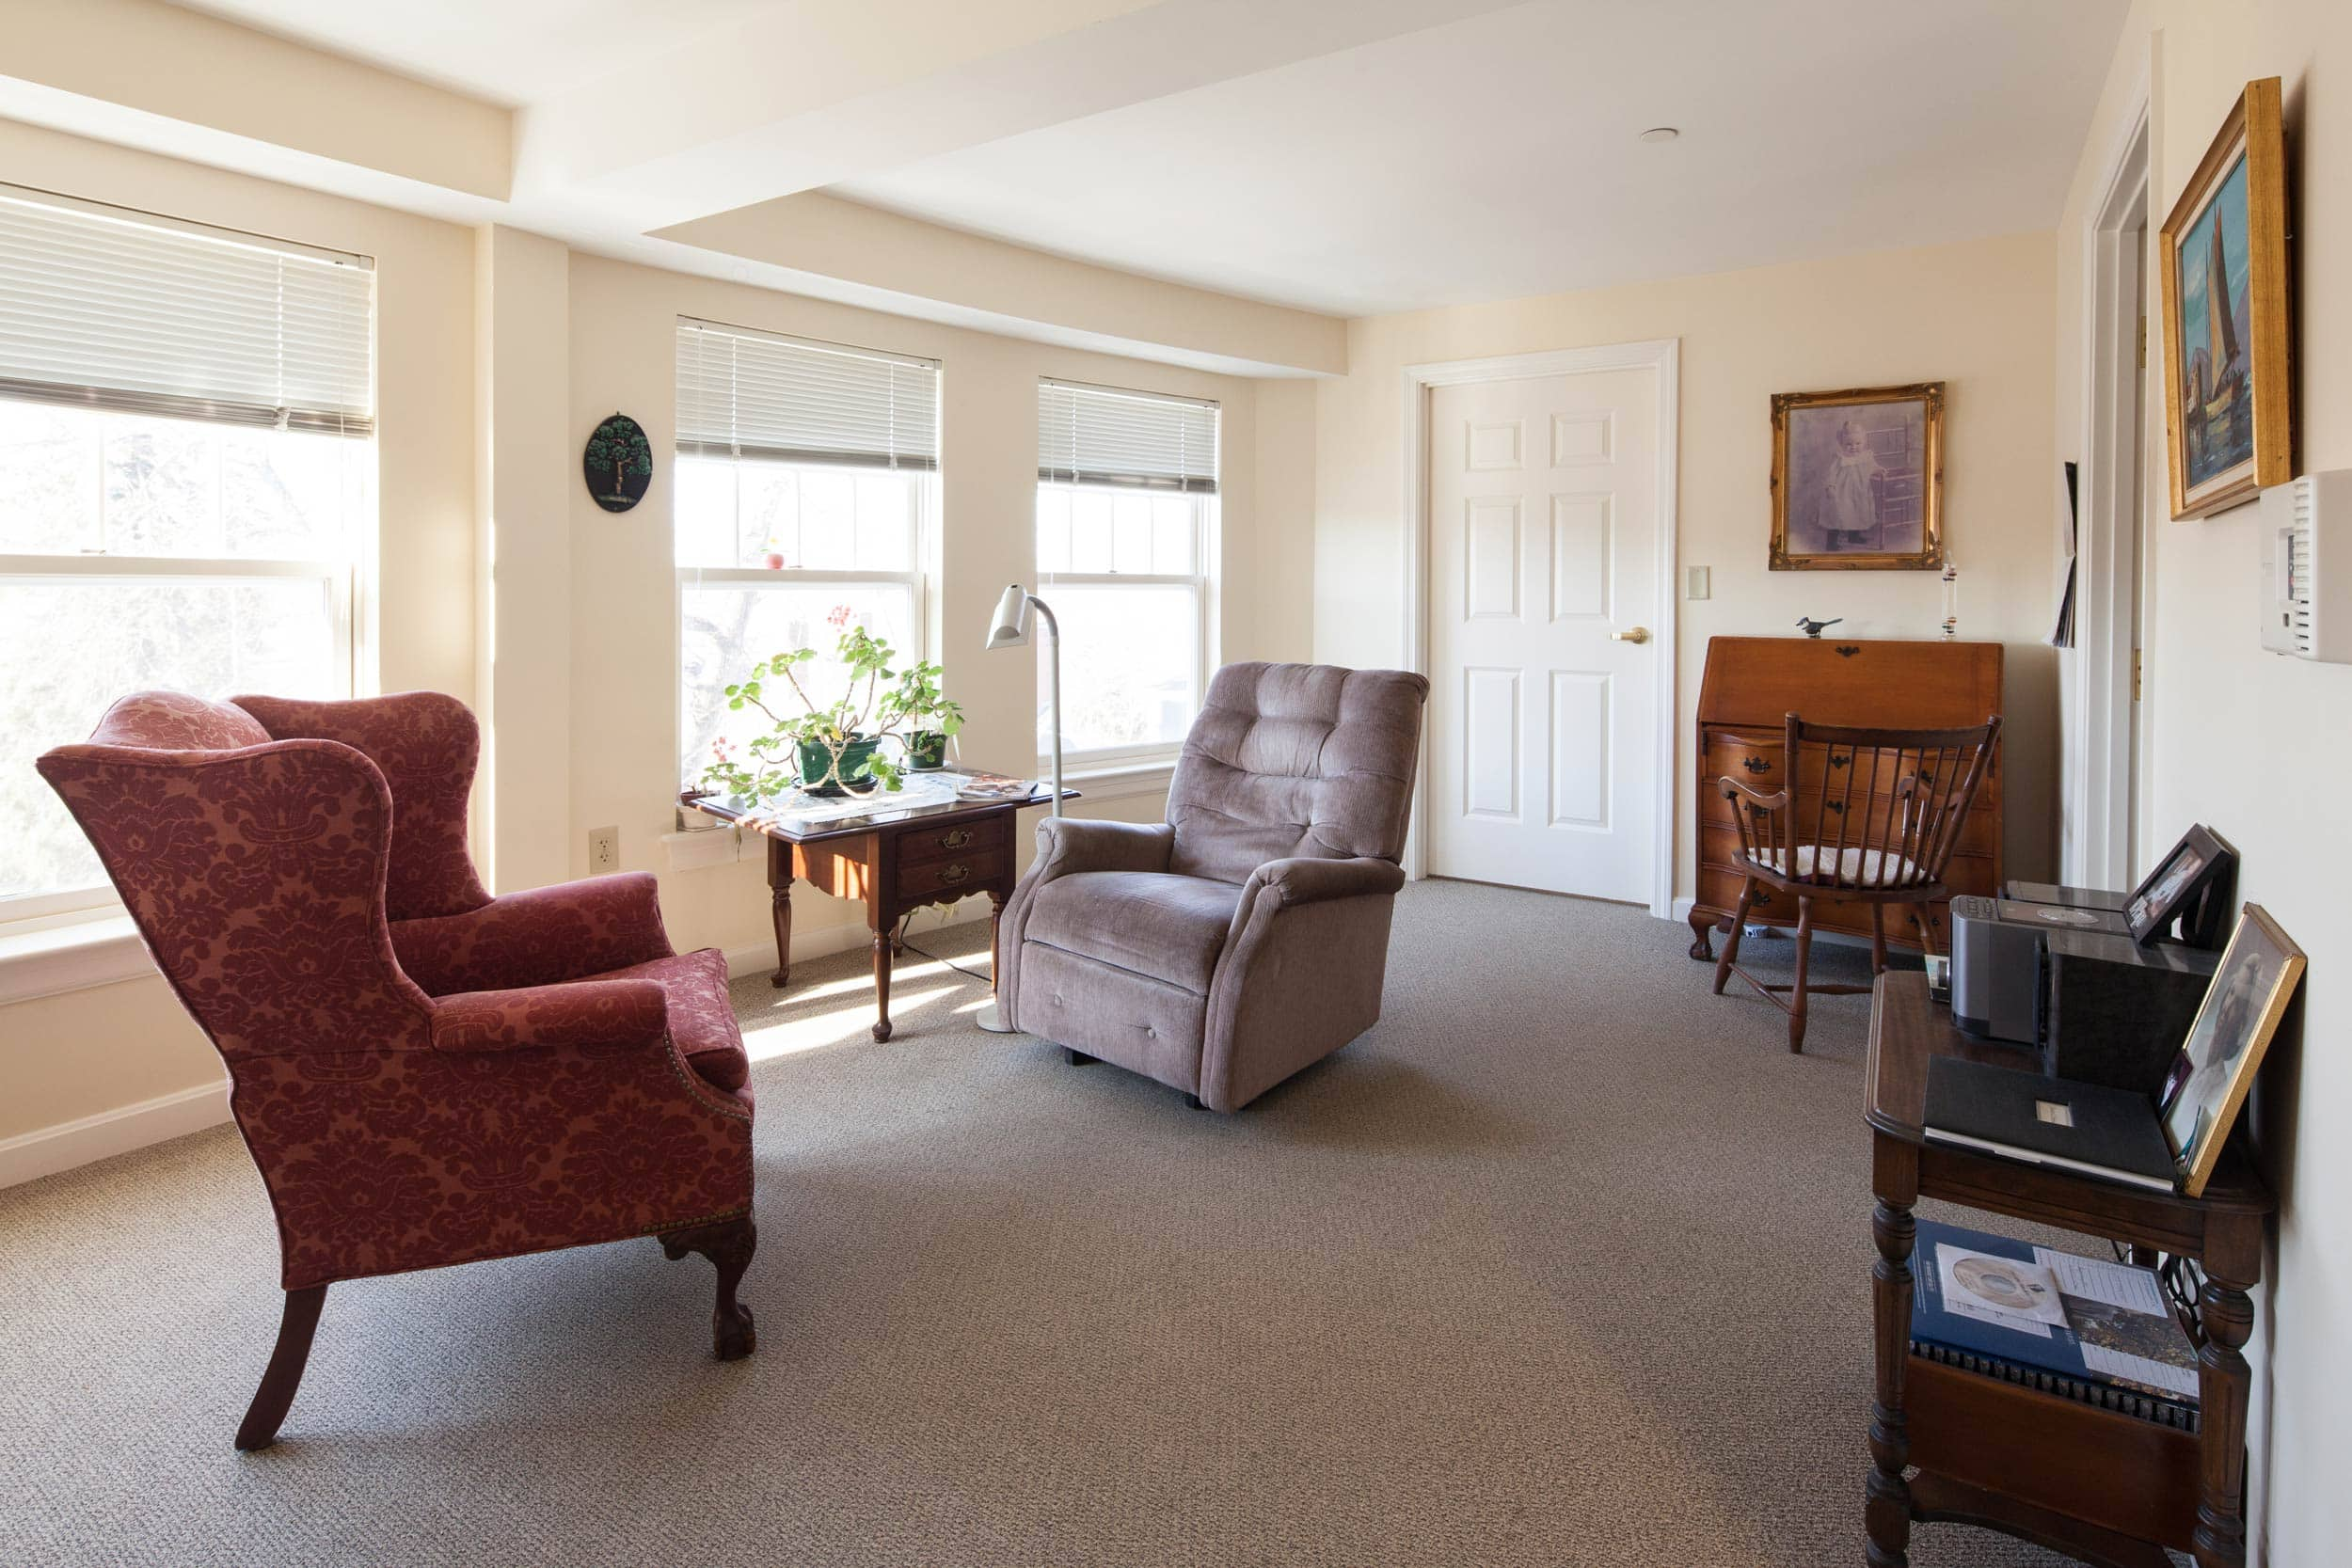 Outside view of seating area in one bedroom living space